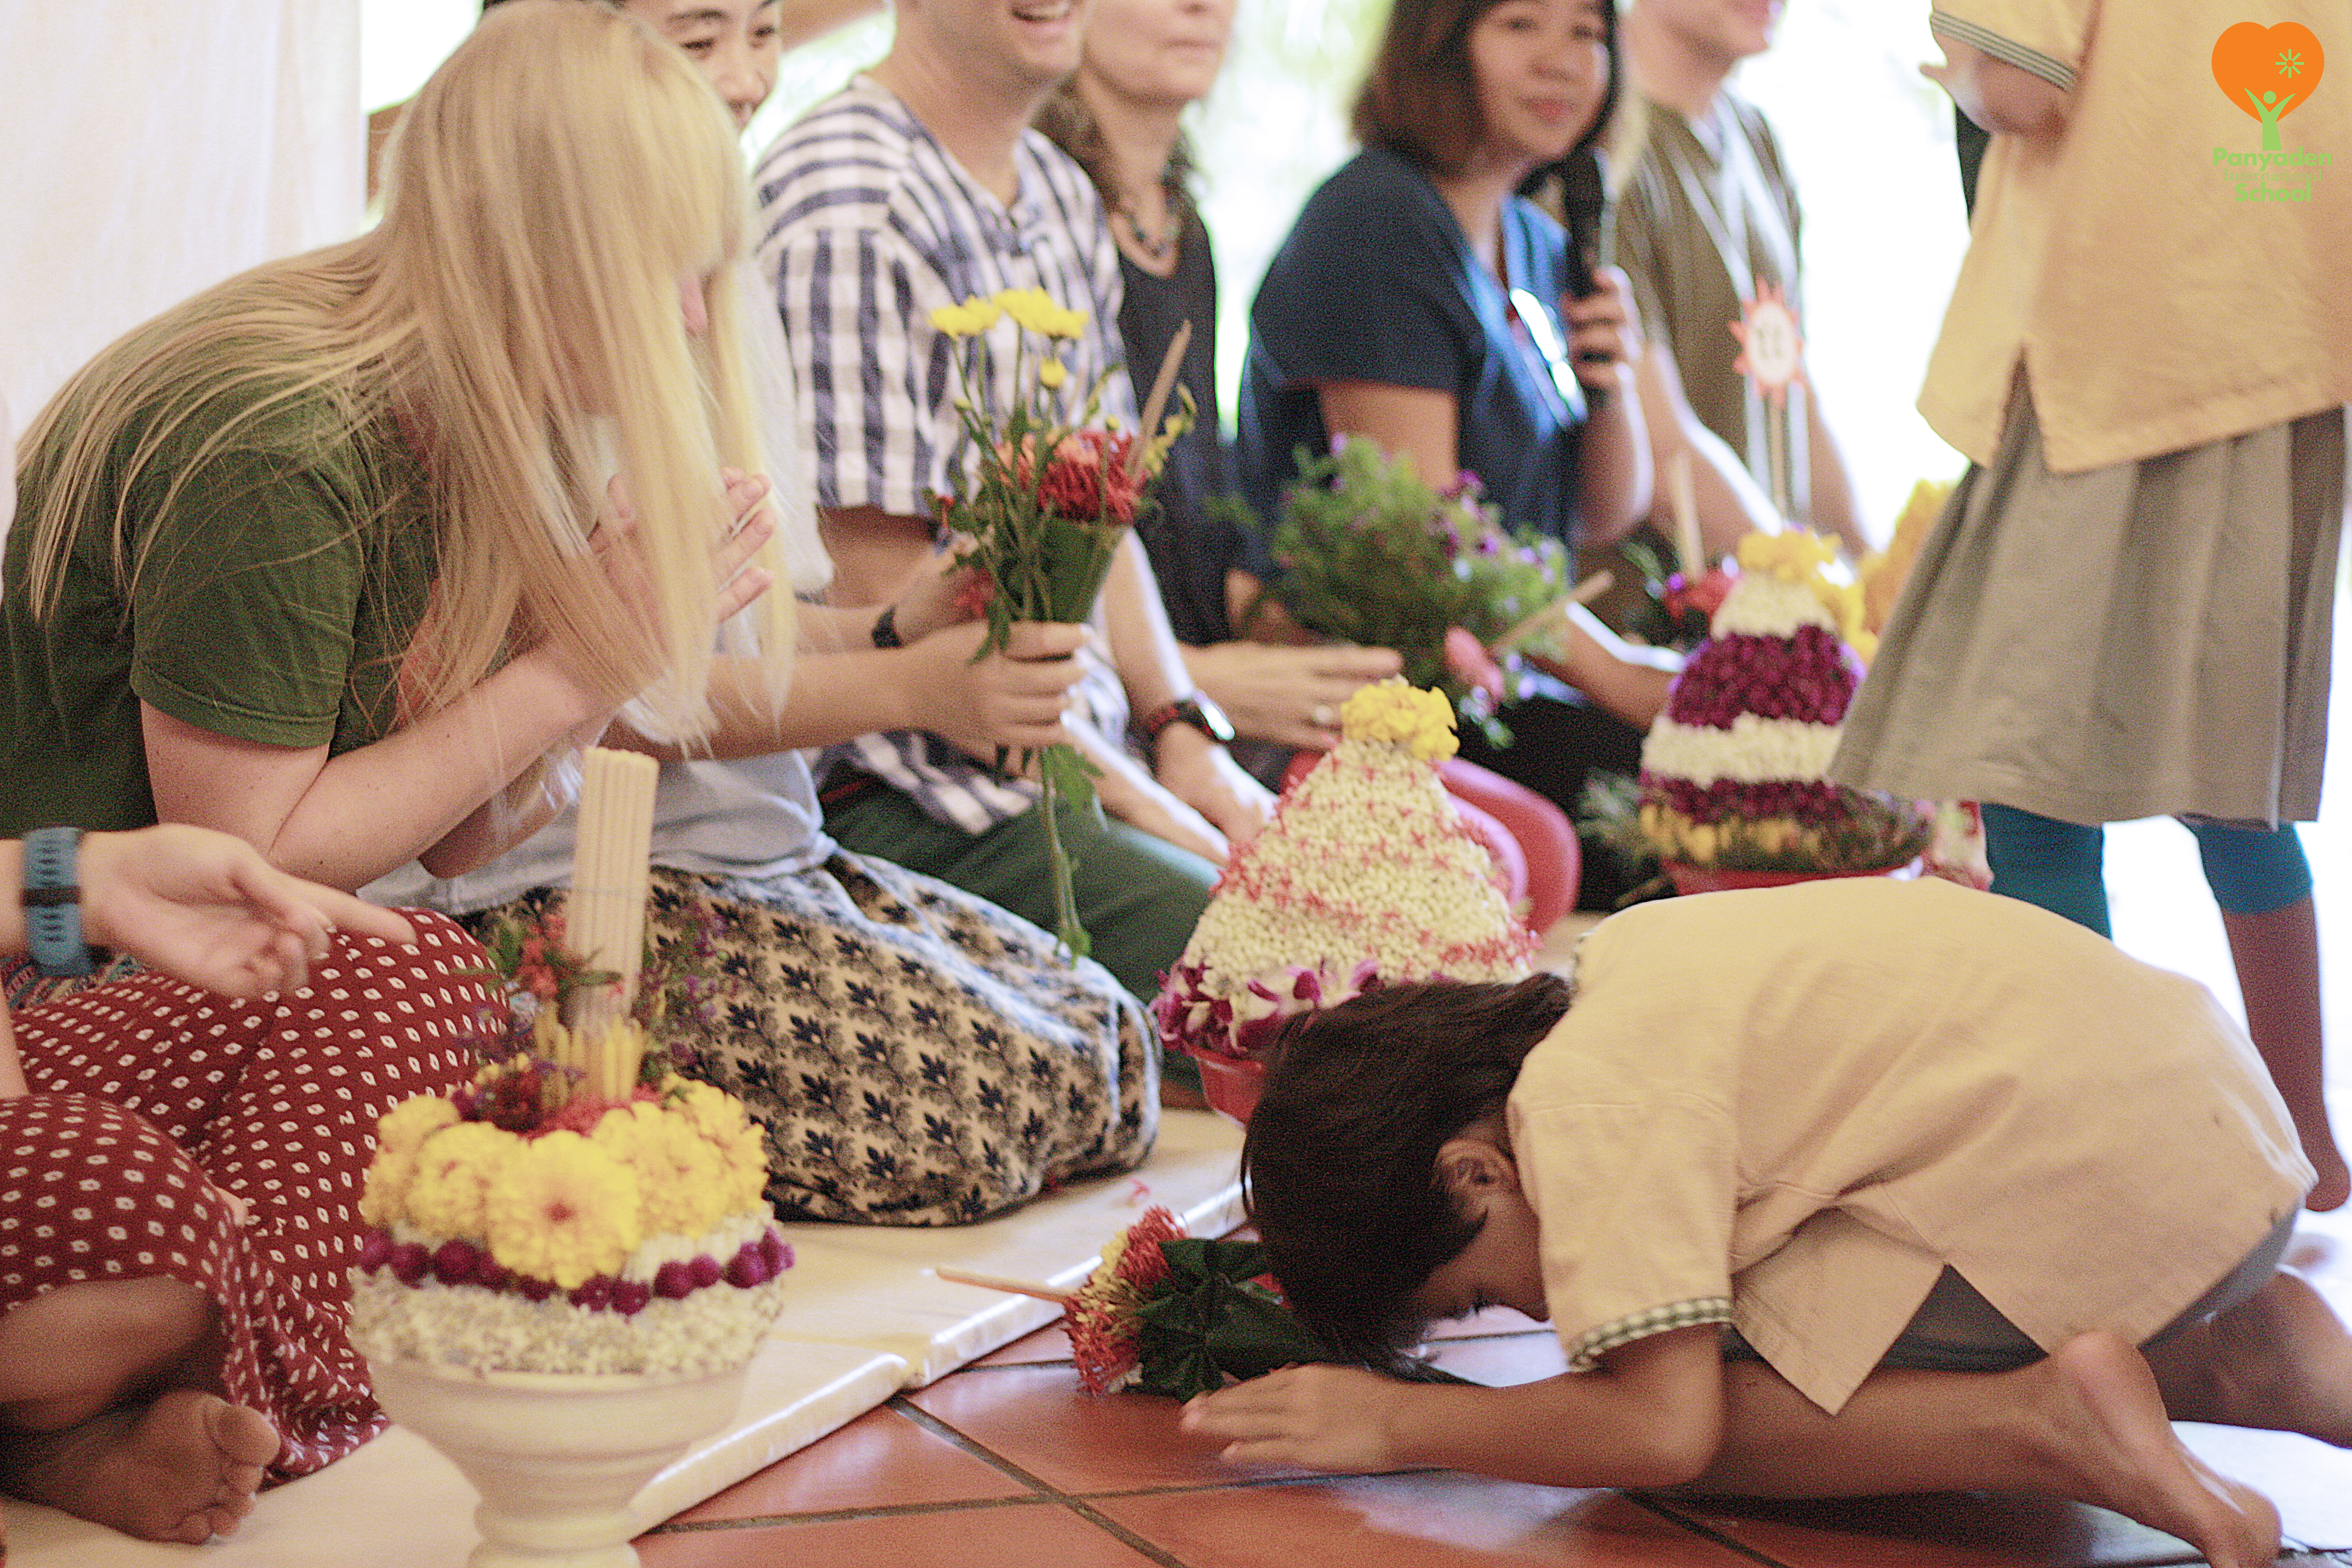 Panyaden student paying respects to teacher on Wai Kru Day